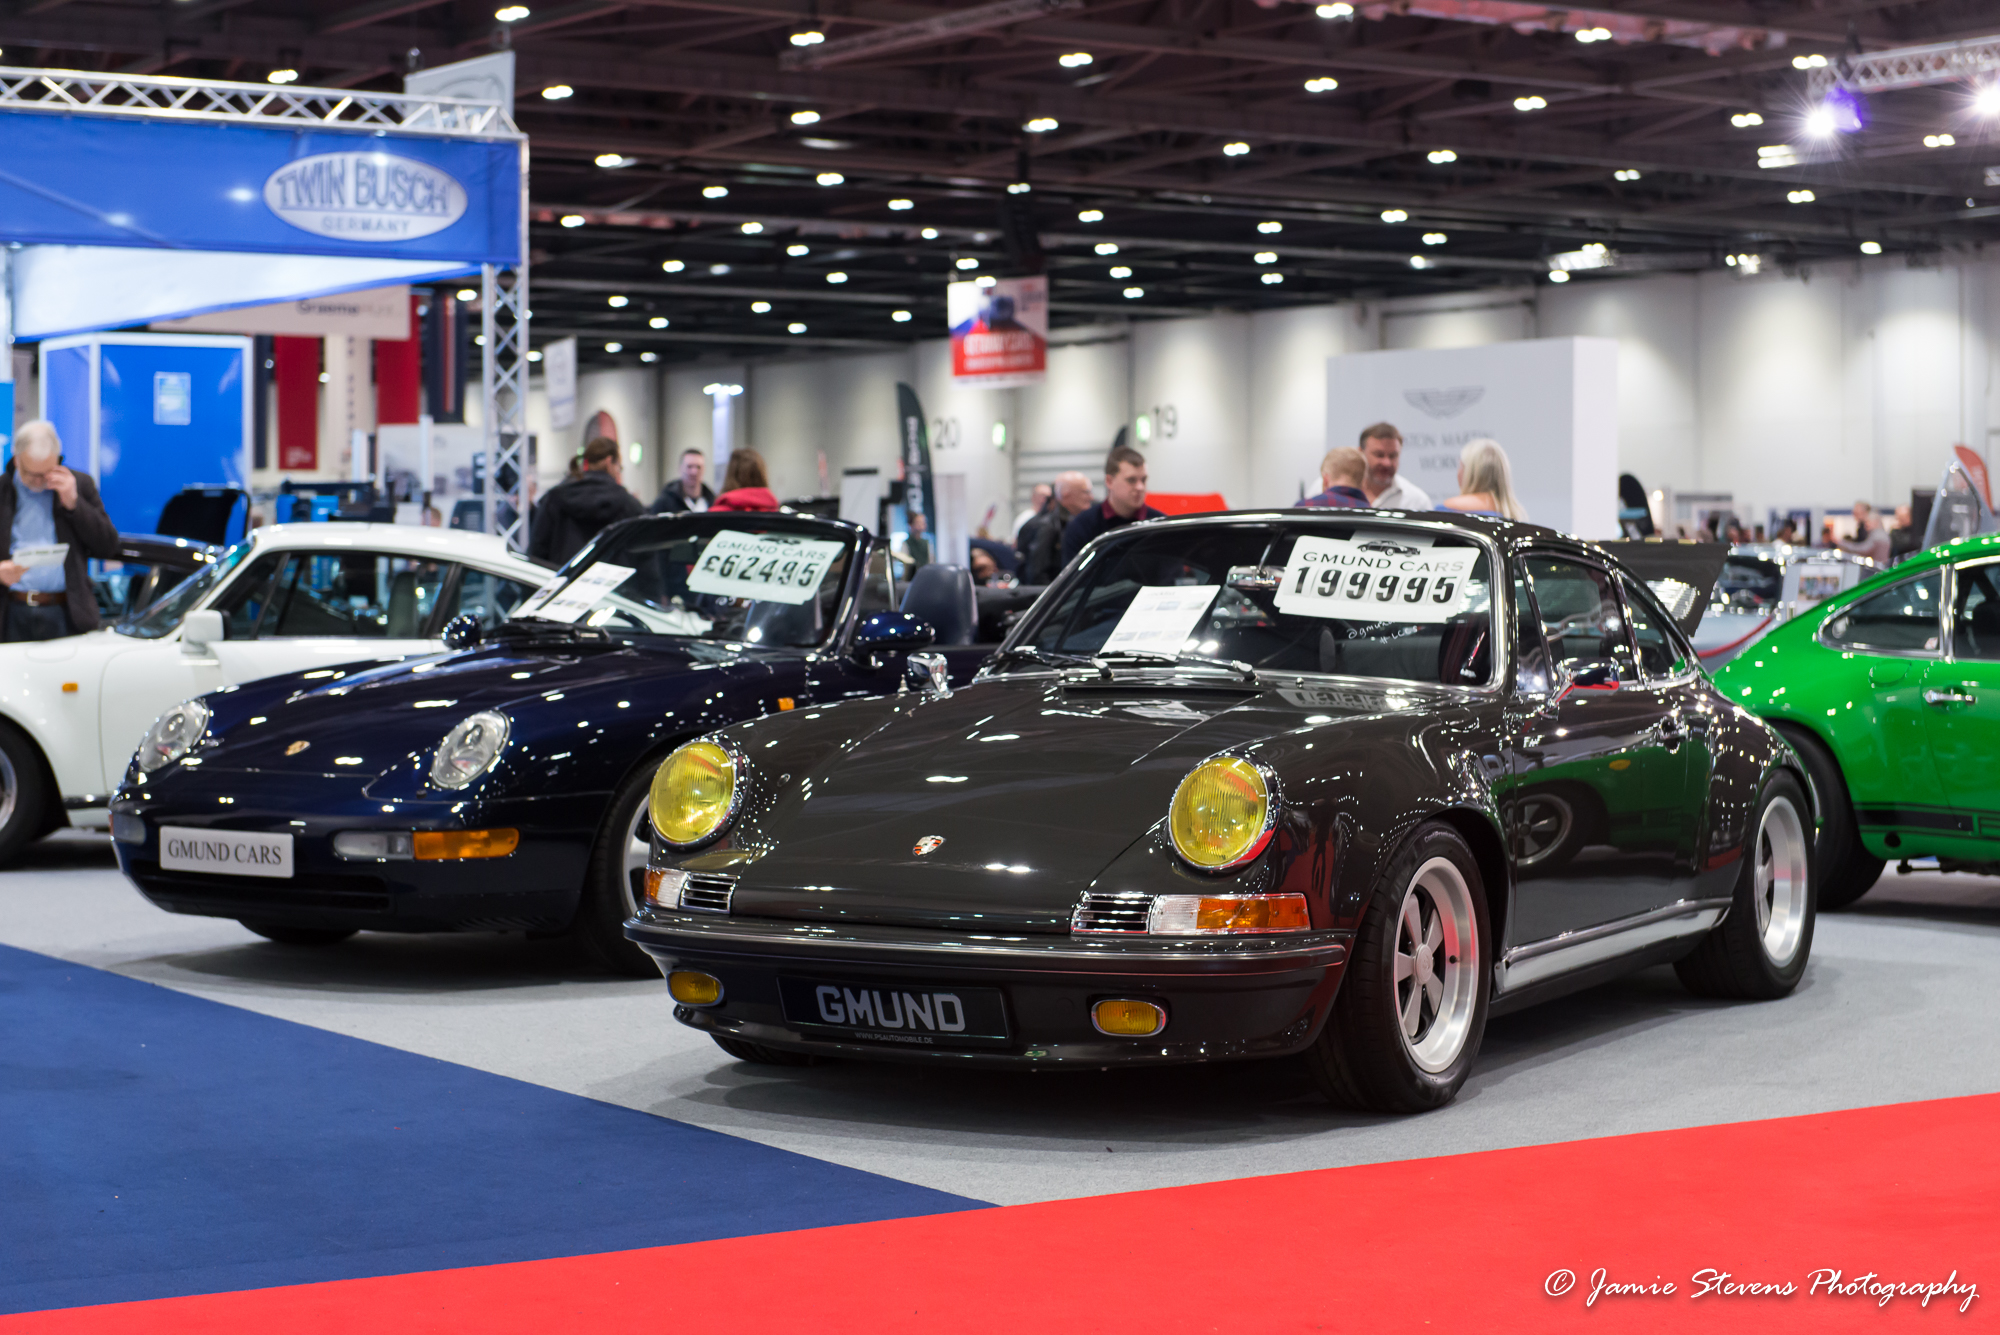 London Classic Car Show OhSoRetro Events - London classic car show